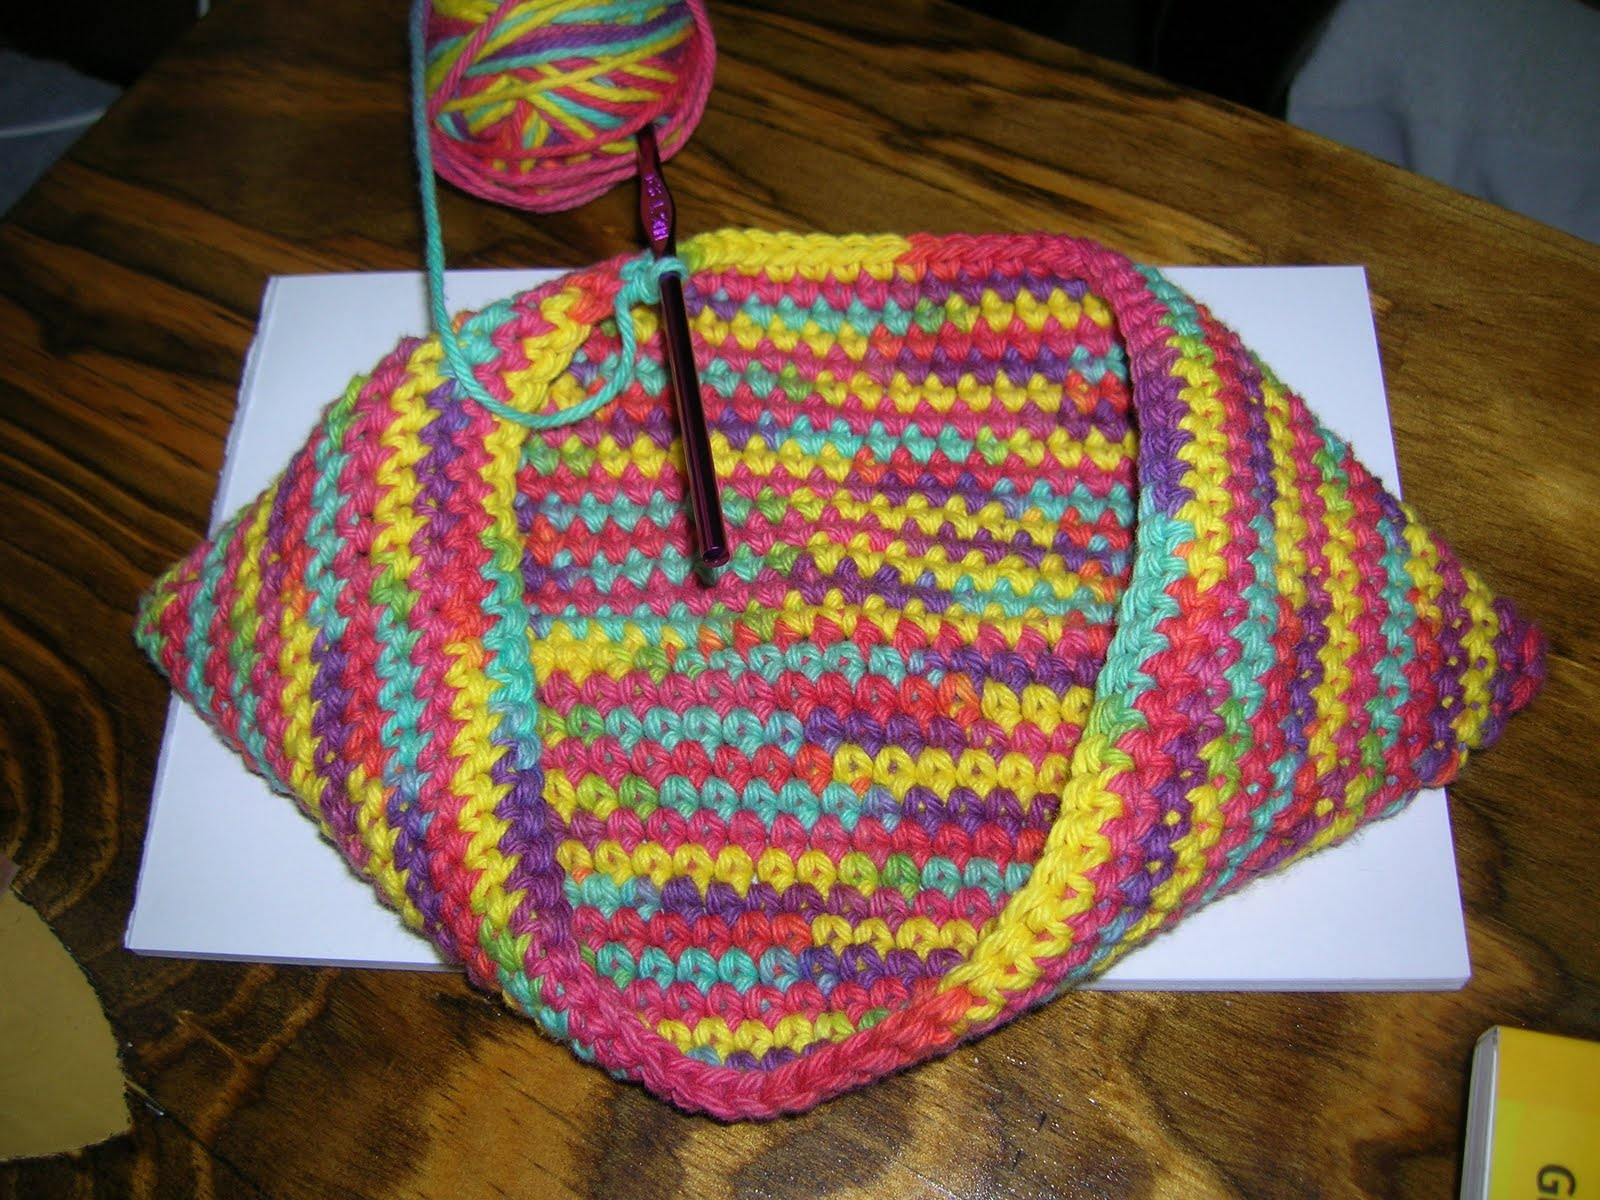 Crochet Patterns Potholders : Crochet Potholder